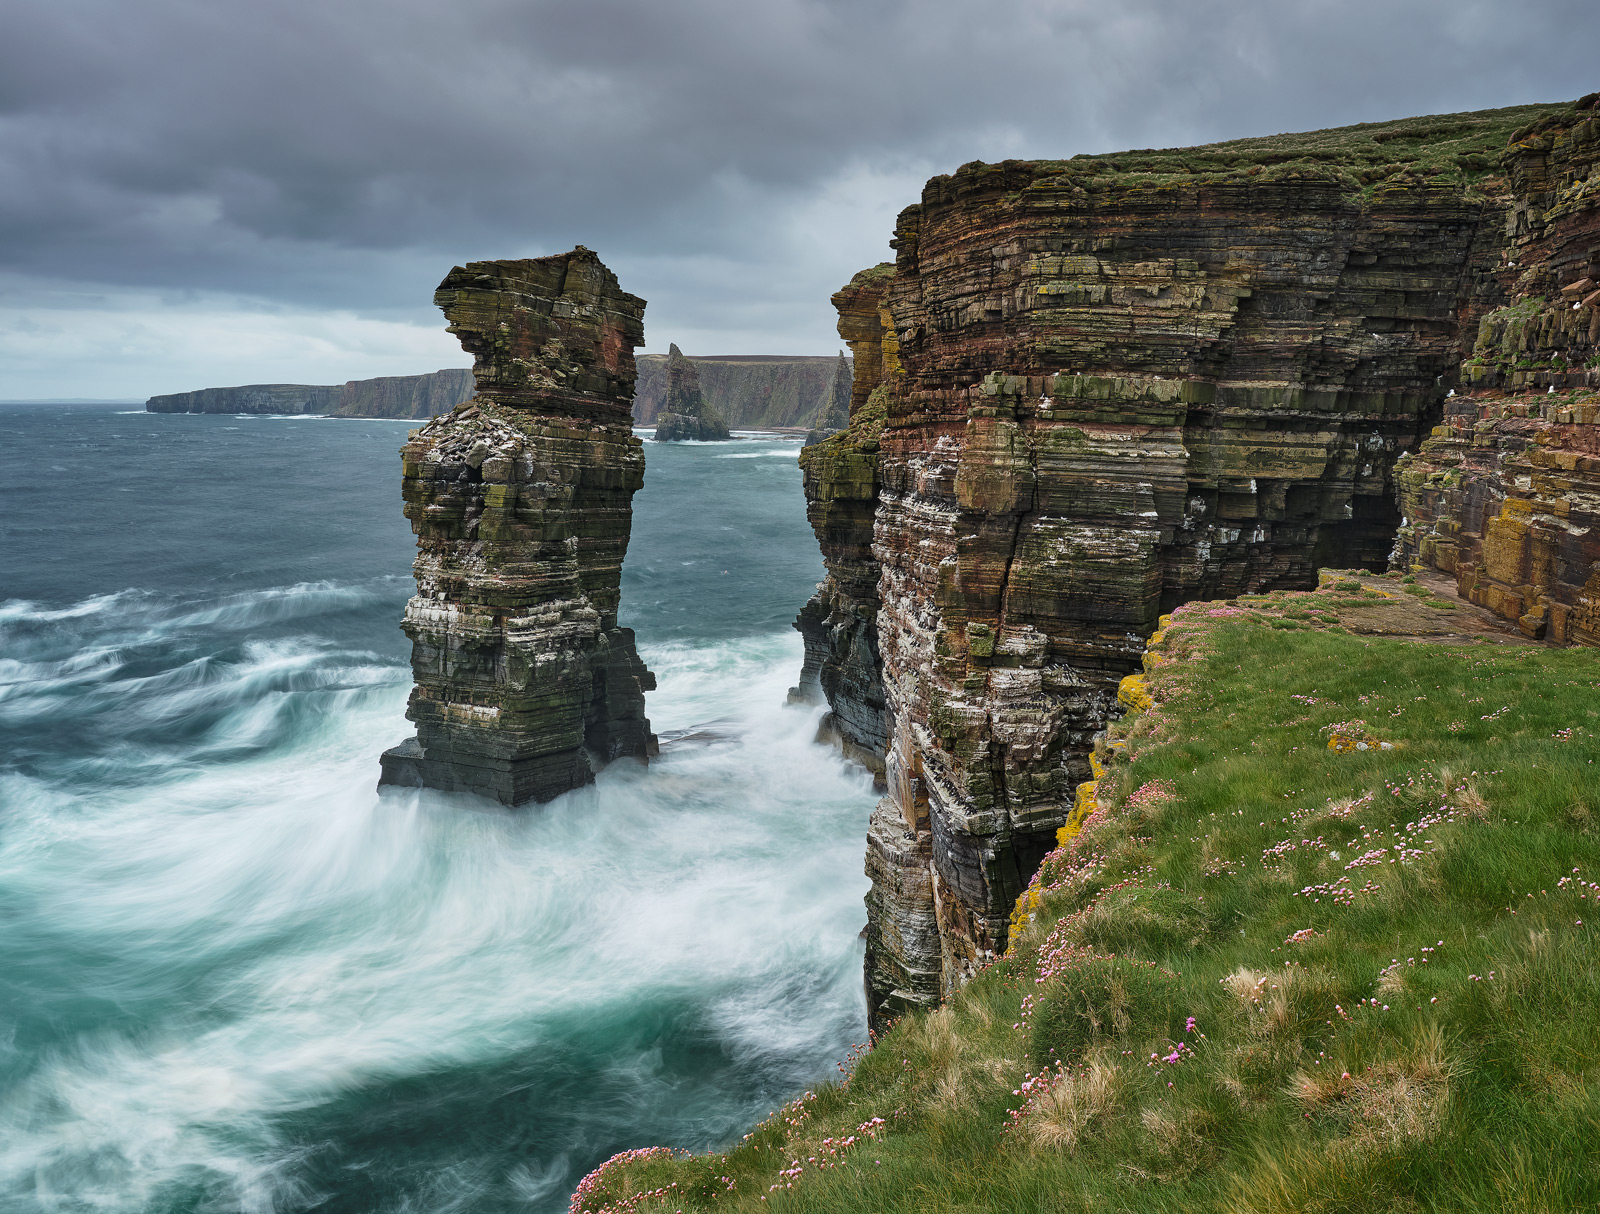 Colossal turquoise waves rolled in and slapped the flanks of the cliffs and sea stack at Duncansby on the Caithness coast.